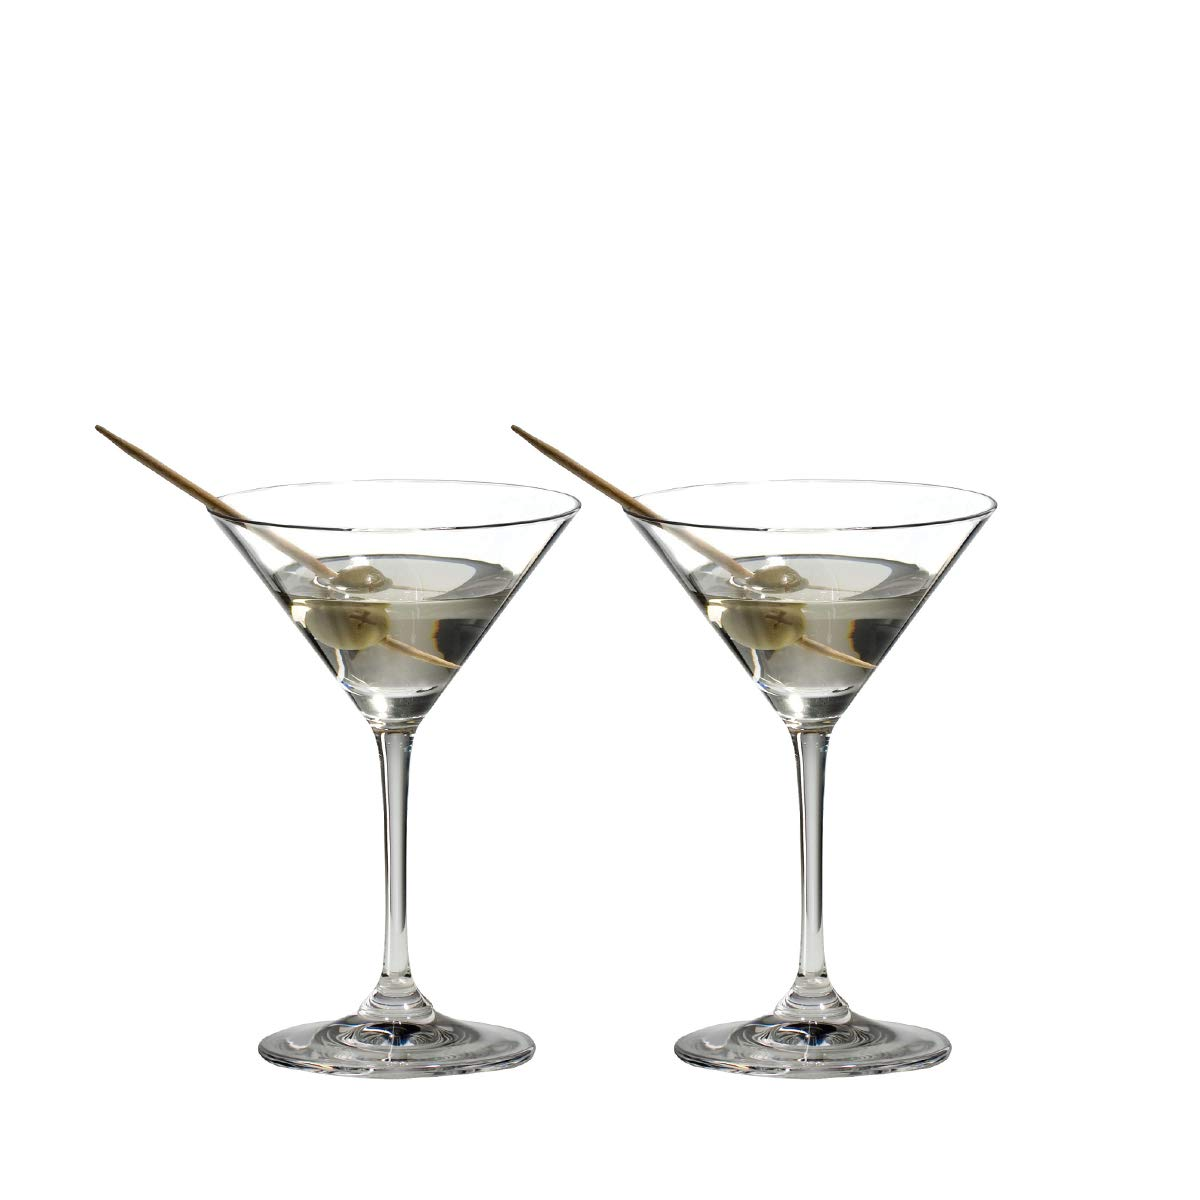 Riedel VINUM Martini Glasses, Set of 2 by Riedel